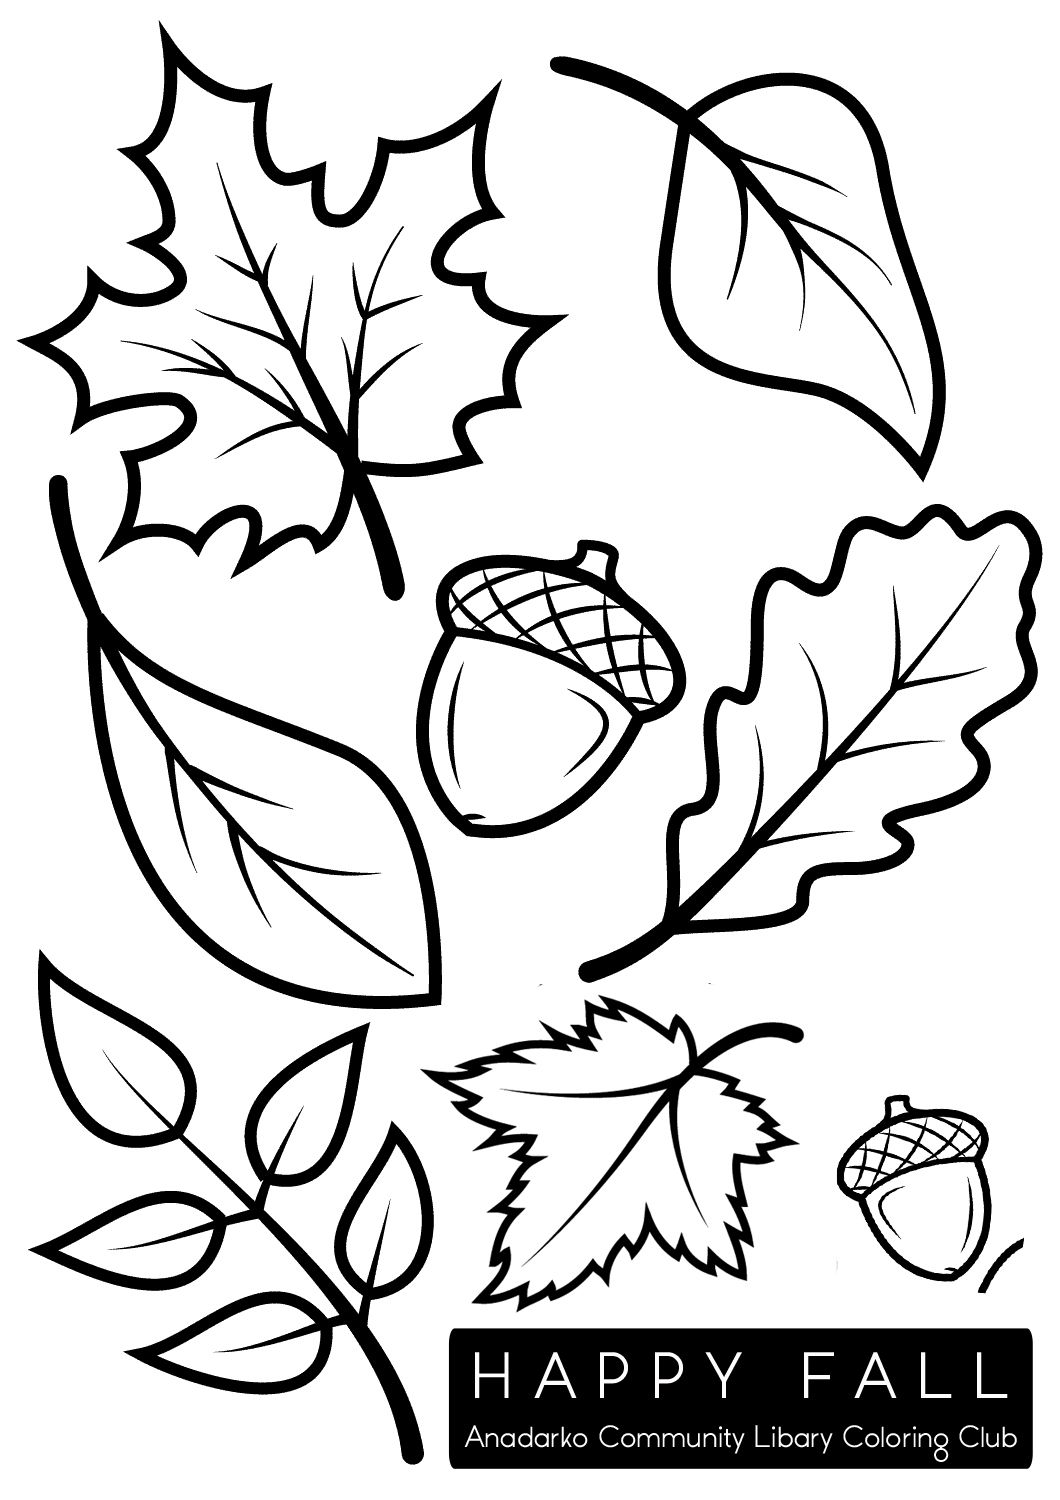 coloring leaf clip art autumn leaves coloring pages free images at clkercom coloring art clip leaf